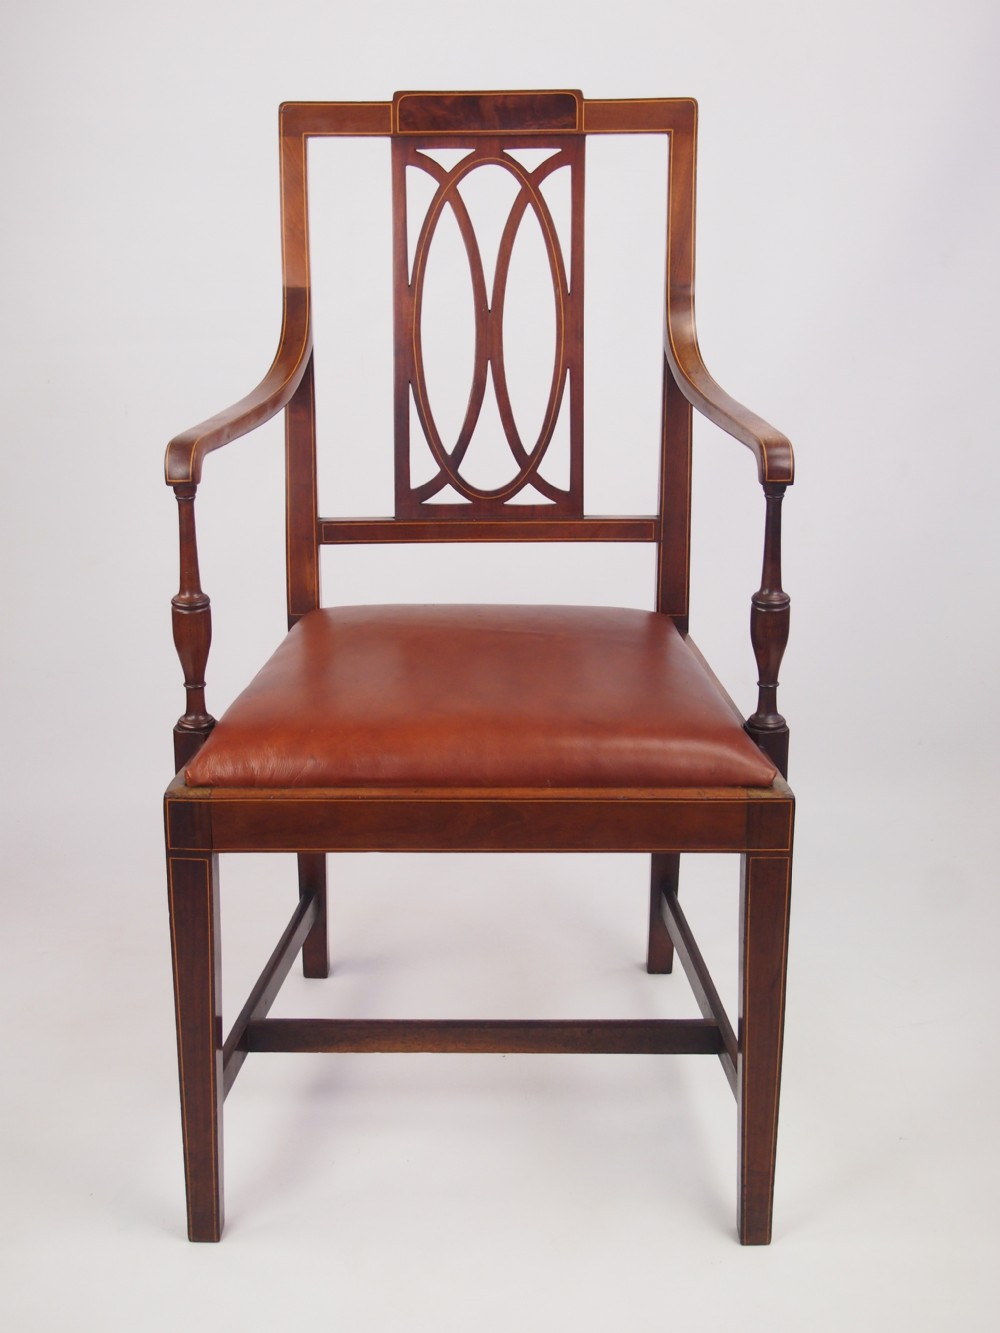 Antique Edwardian Desk Chair With Leather Seat